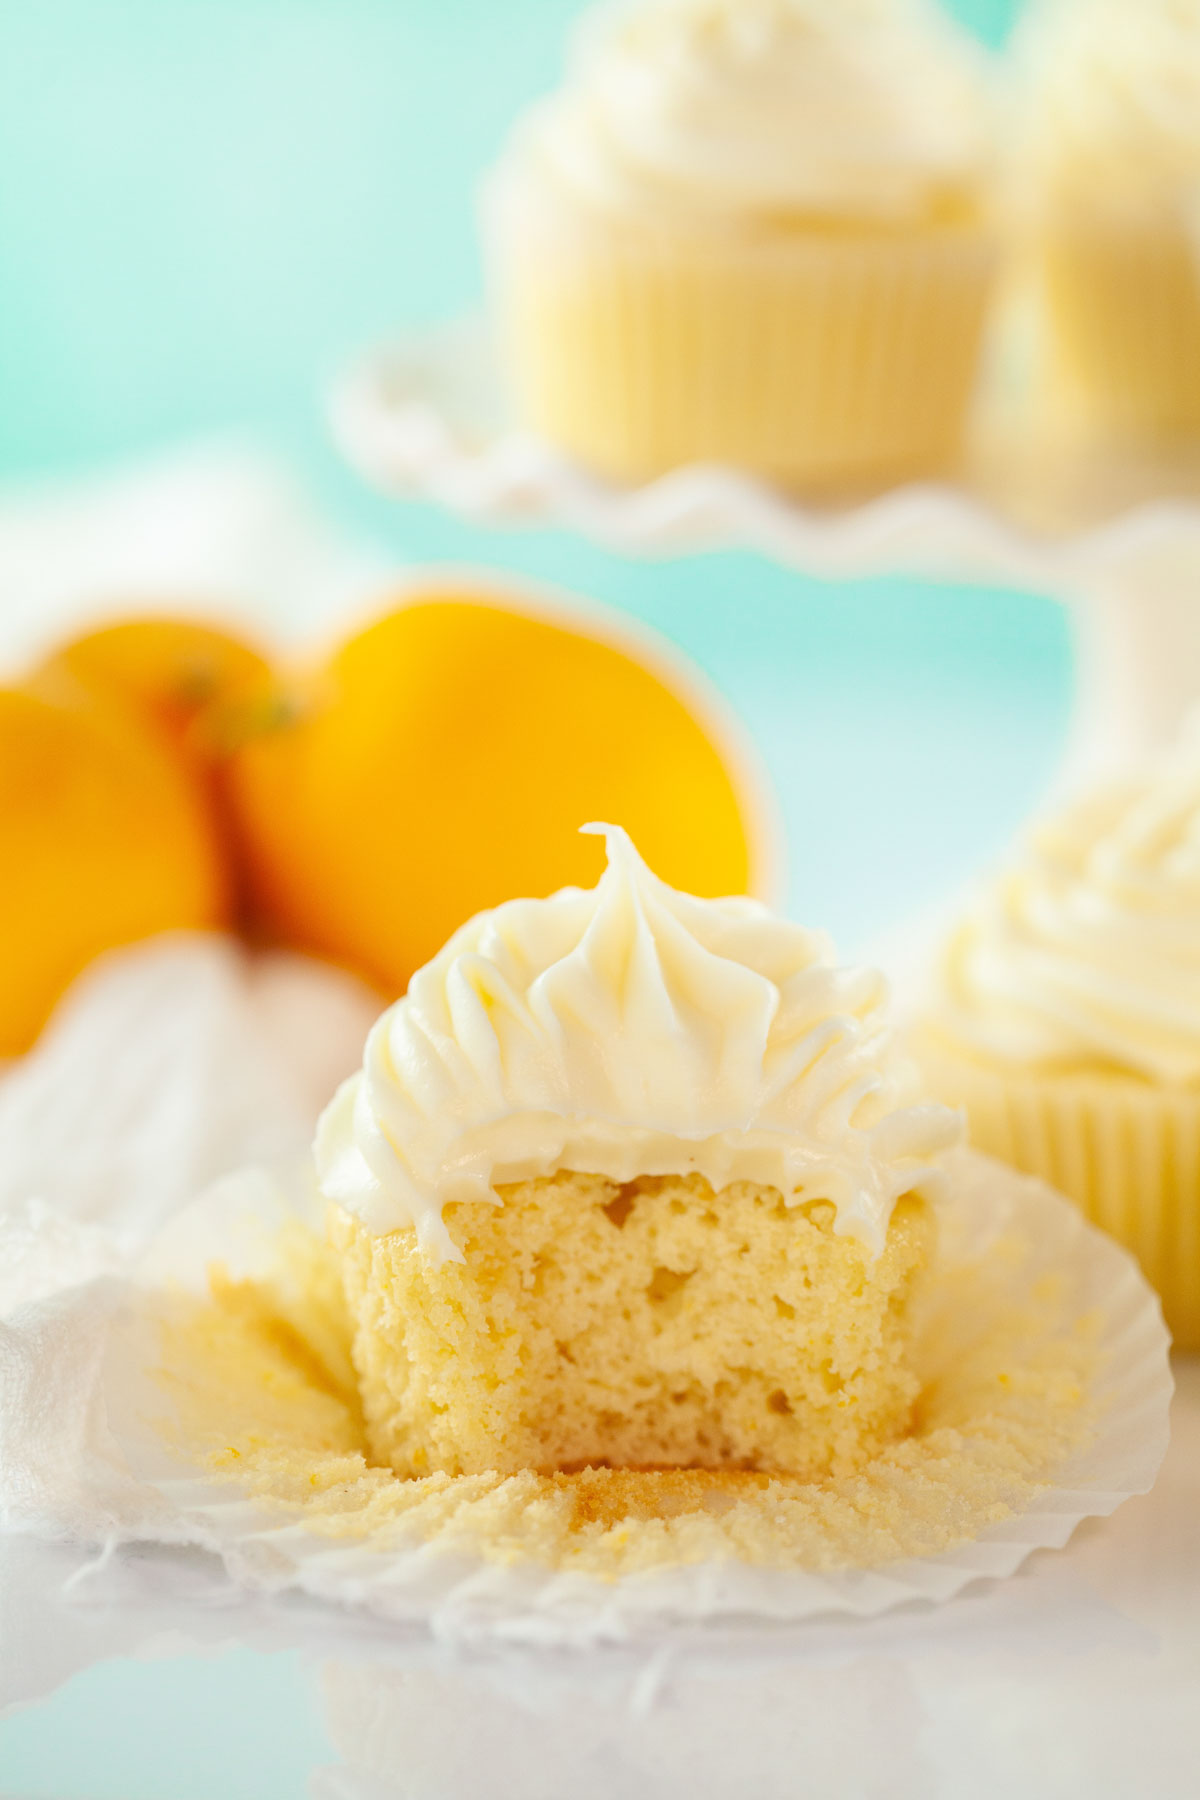 lemon cupcake with a bite taken out of it